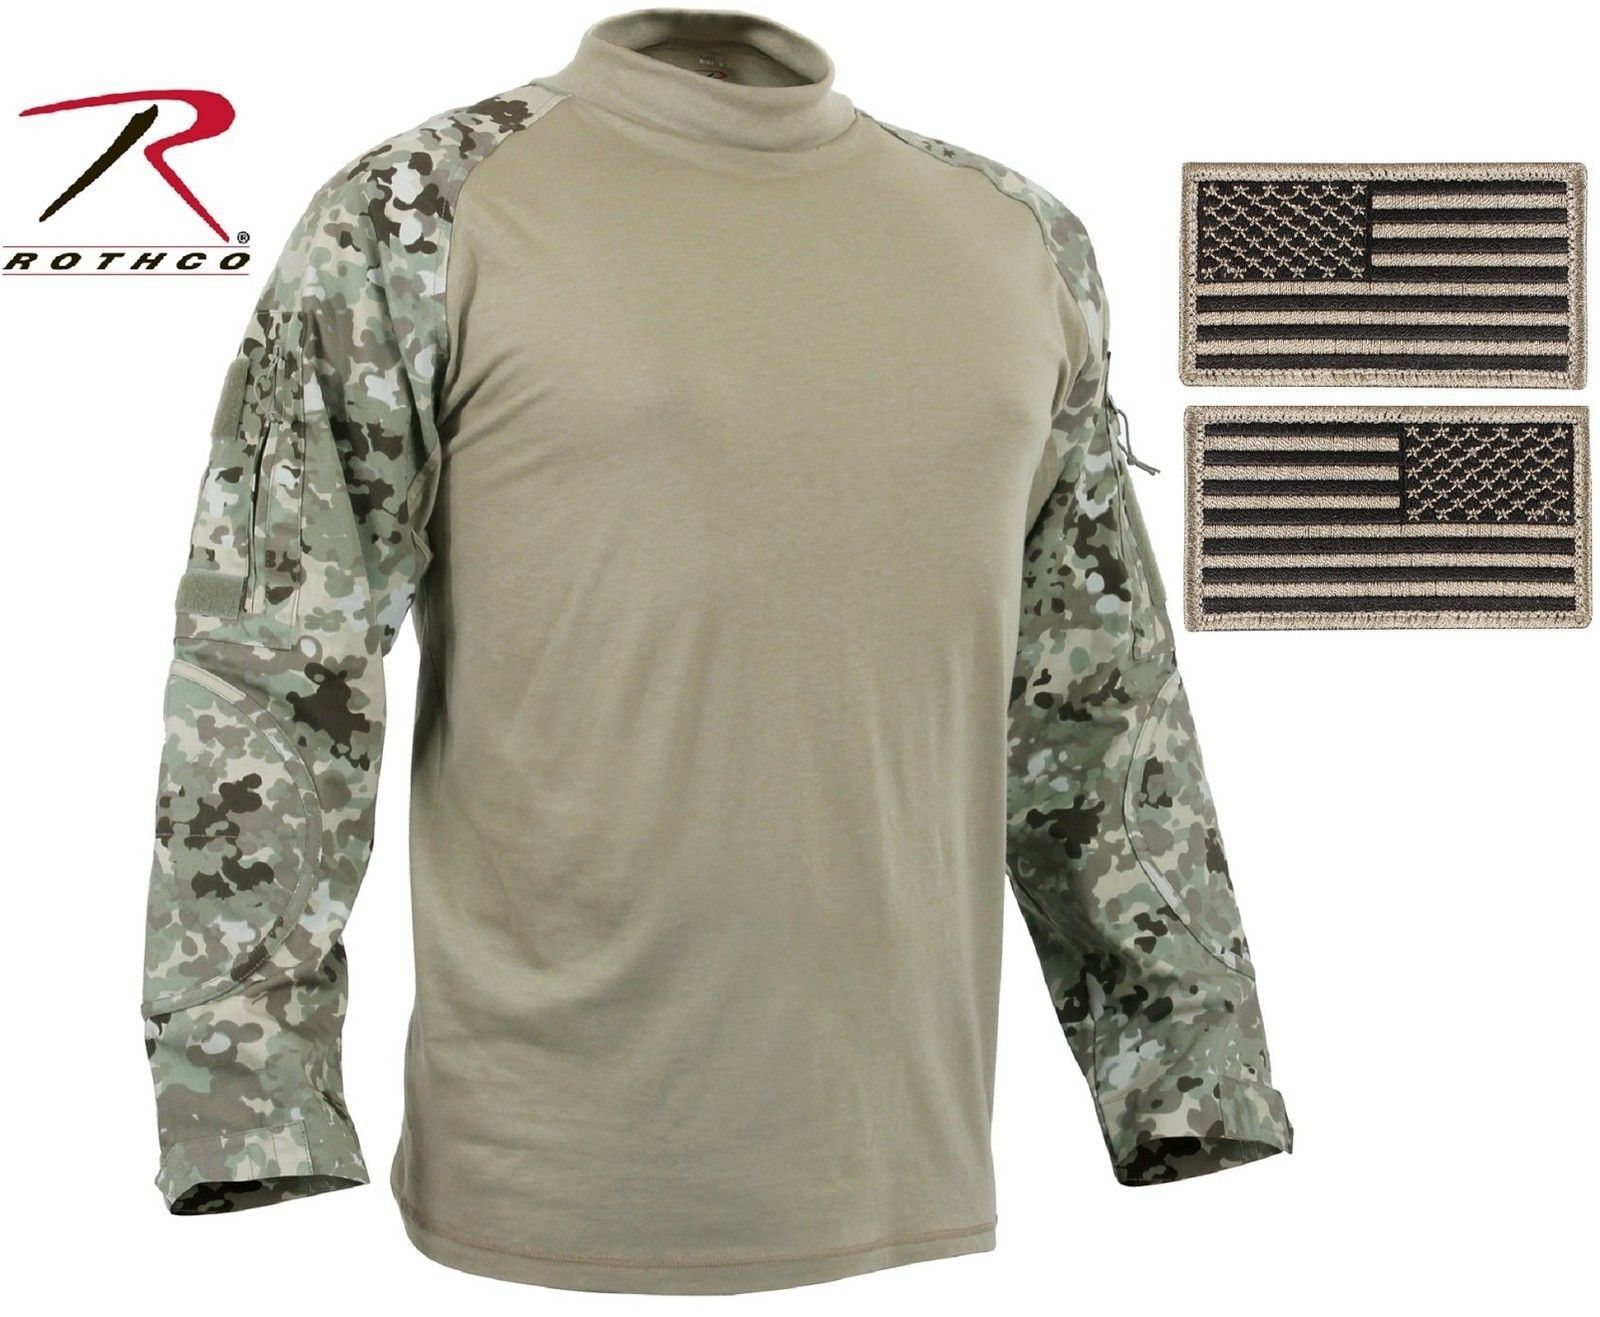 40d486c3 TOTAL TERRAIN CAMO MILITARY COMBAT SHIRTS Military Combat Shirt That's Made  For Comfort, But Worn For Protection Designed For Military and Tactical ...